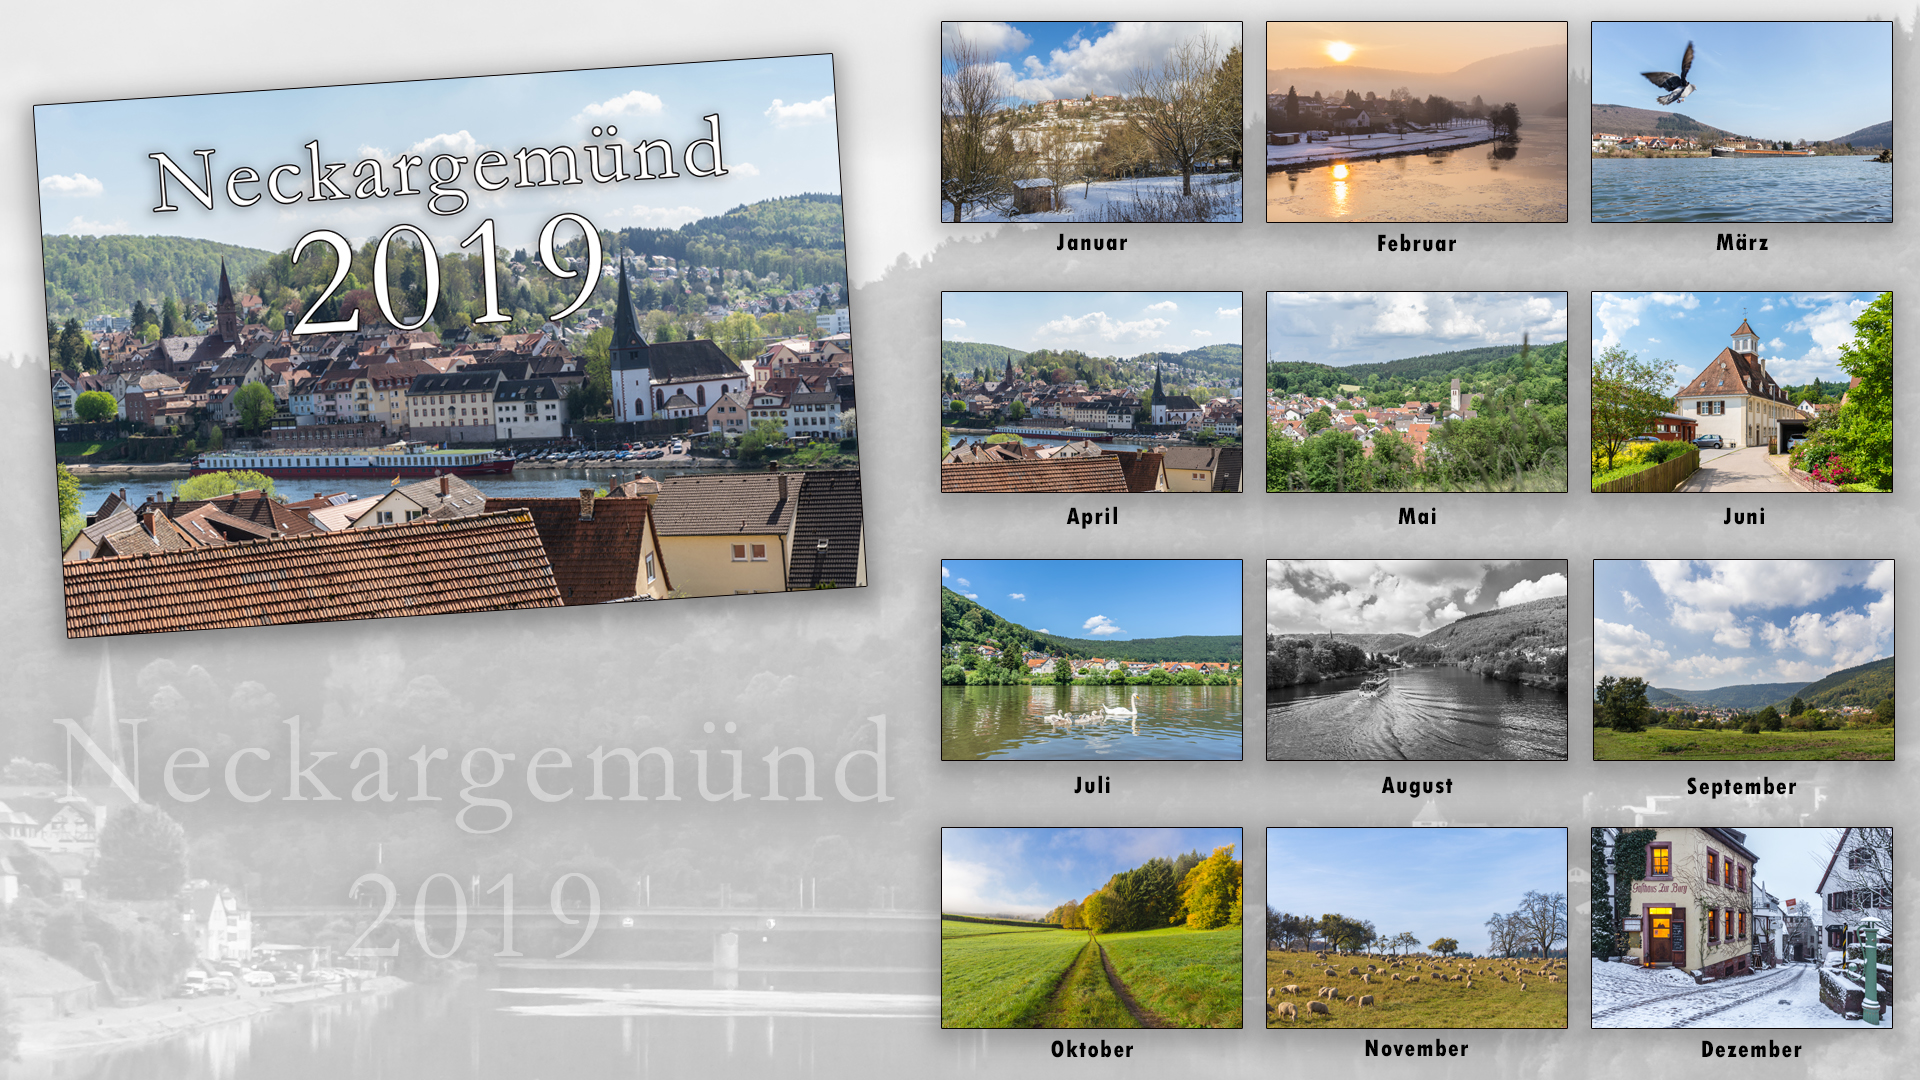 Calendar preview: Neckargemünd